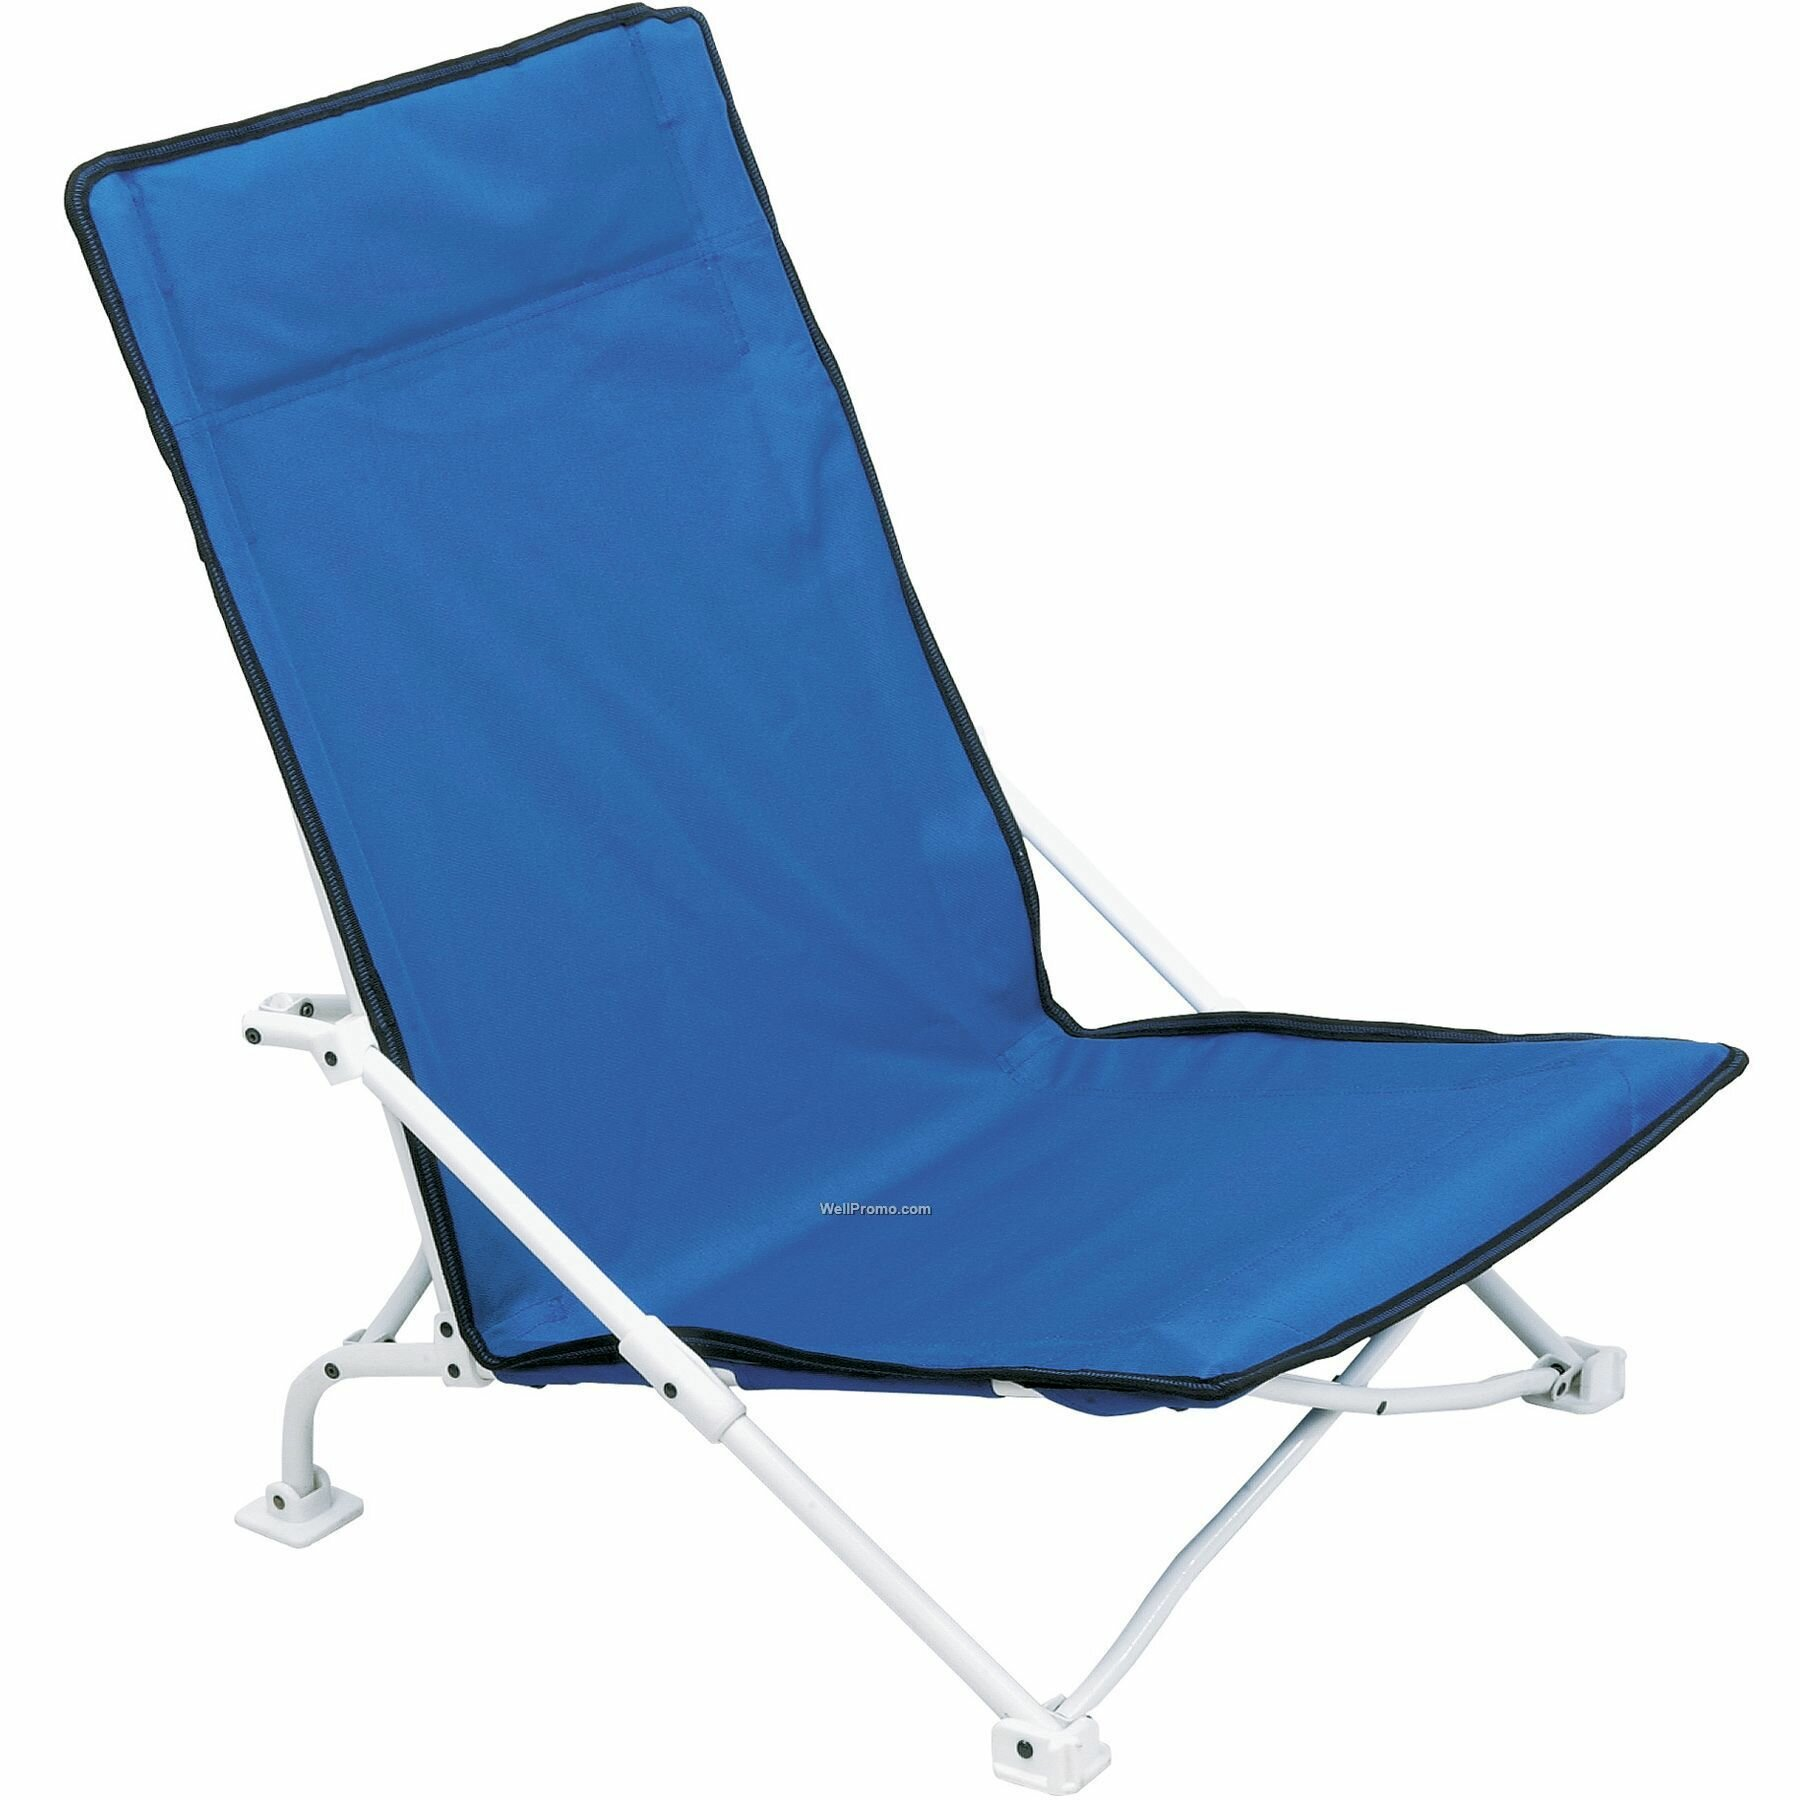 Low Folding Beach Chair Small Fold Up Chair